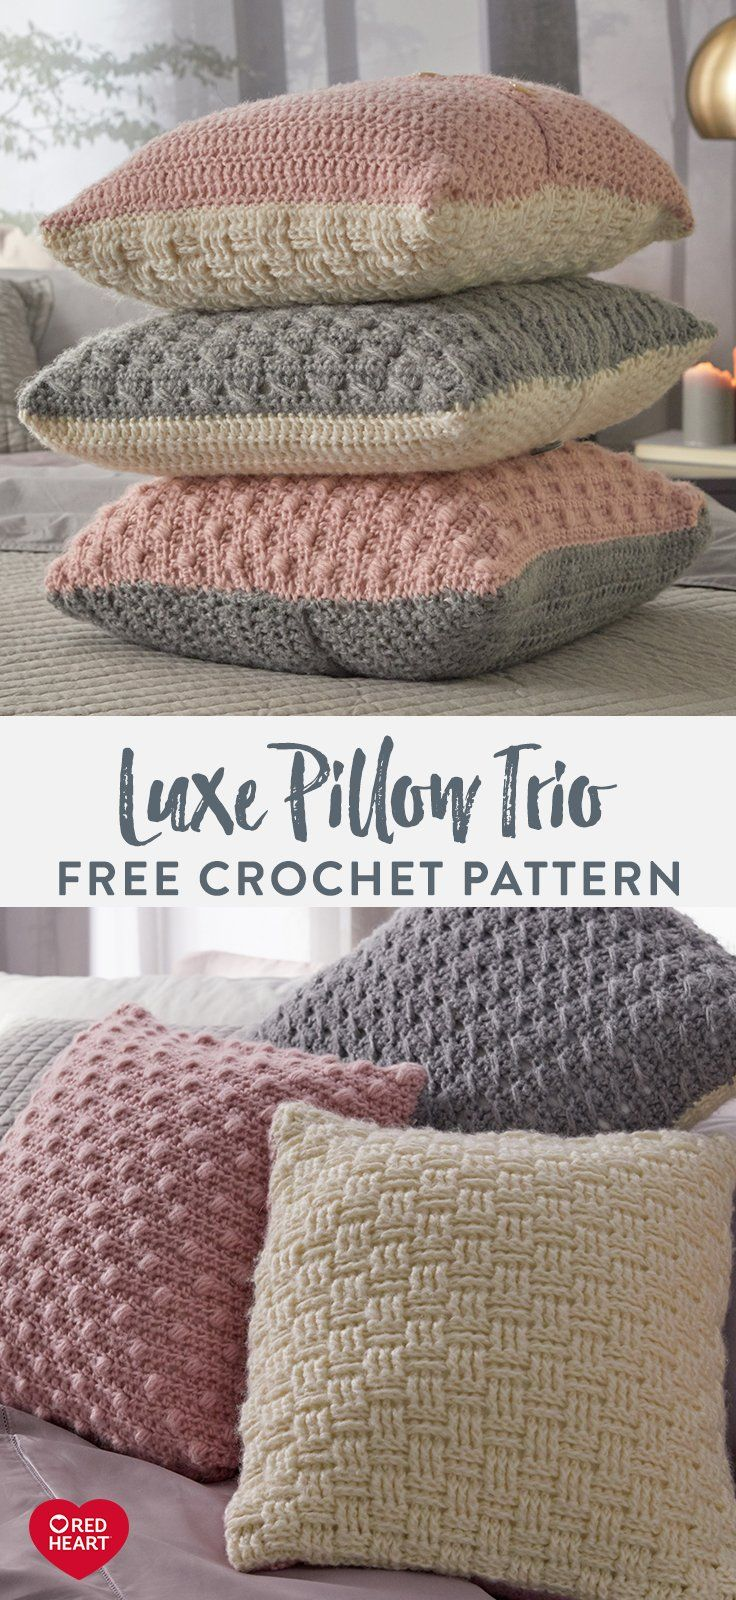 Photo of Luxe Pillow Trio free crochet pattern in Red Heart Dreamy yarn. This soft, brush…